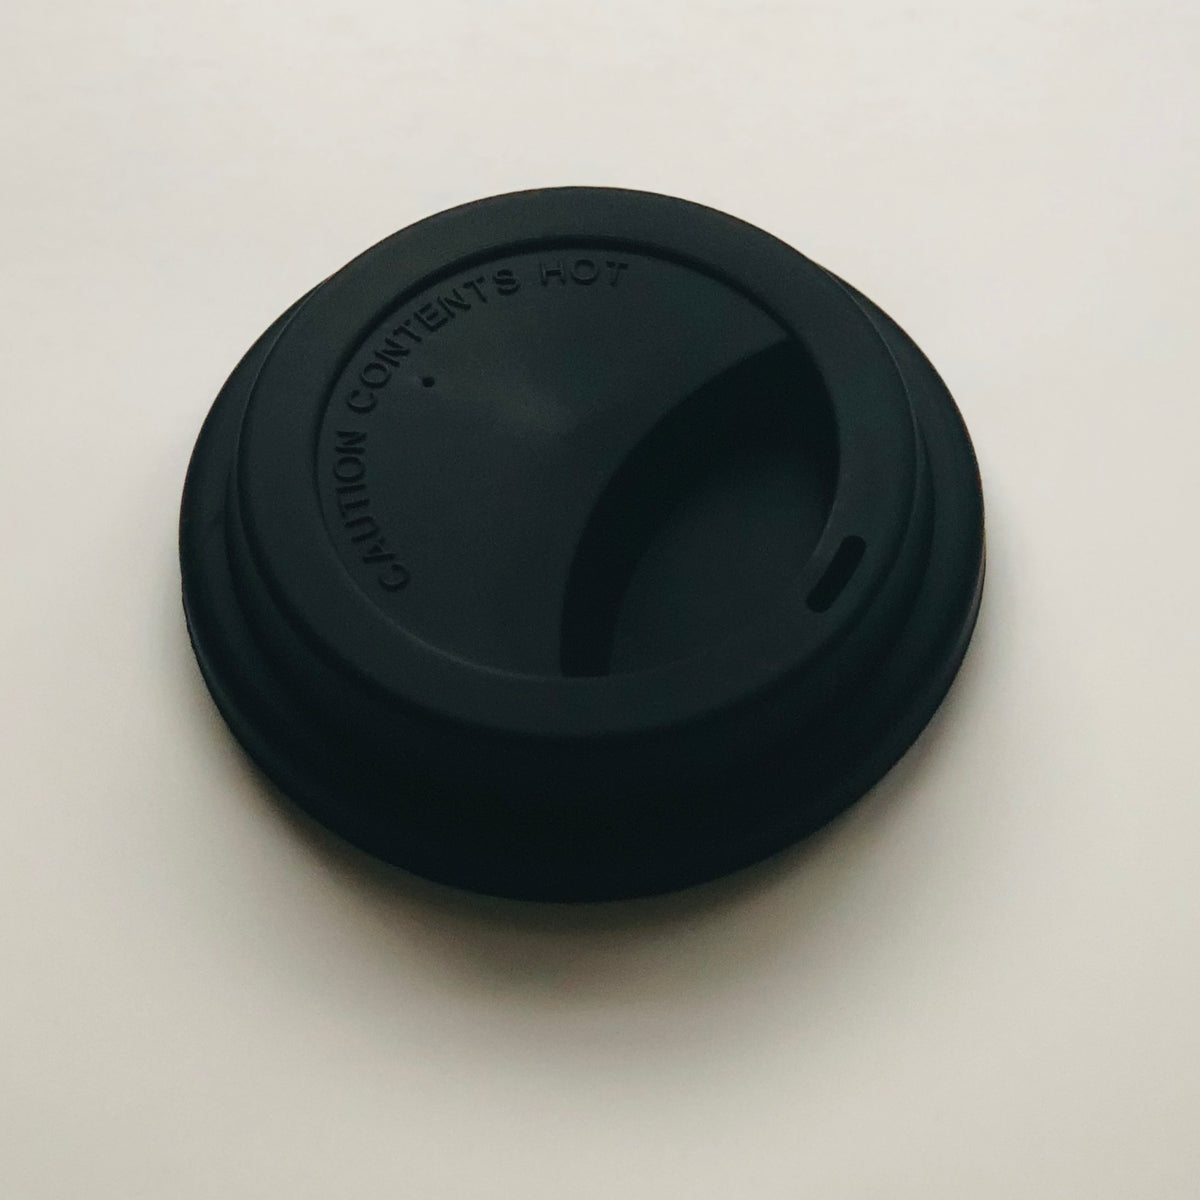 Reusable cup lids